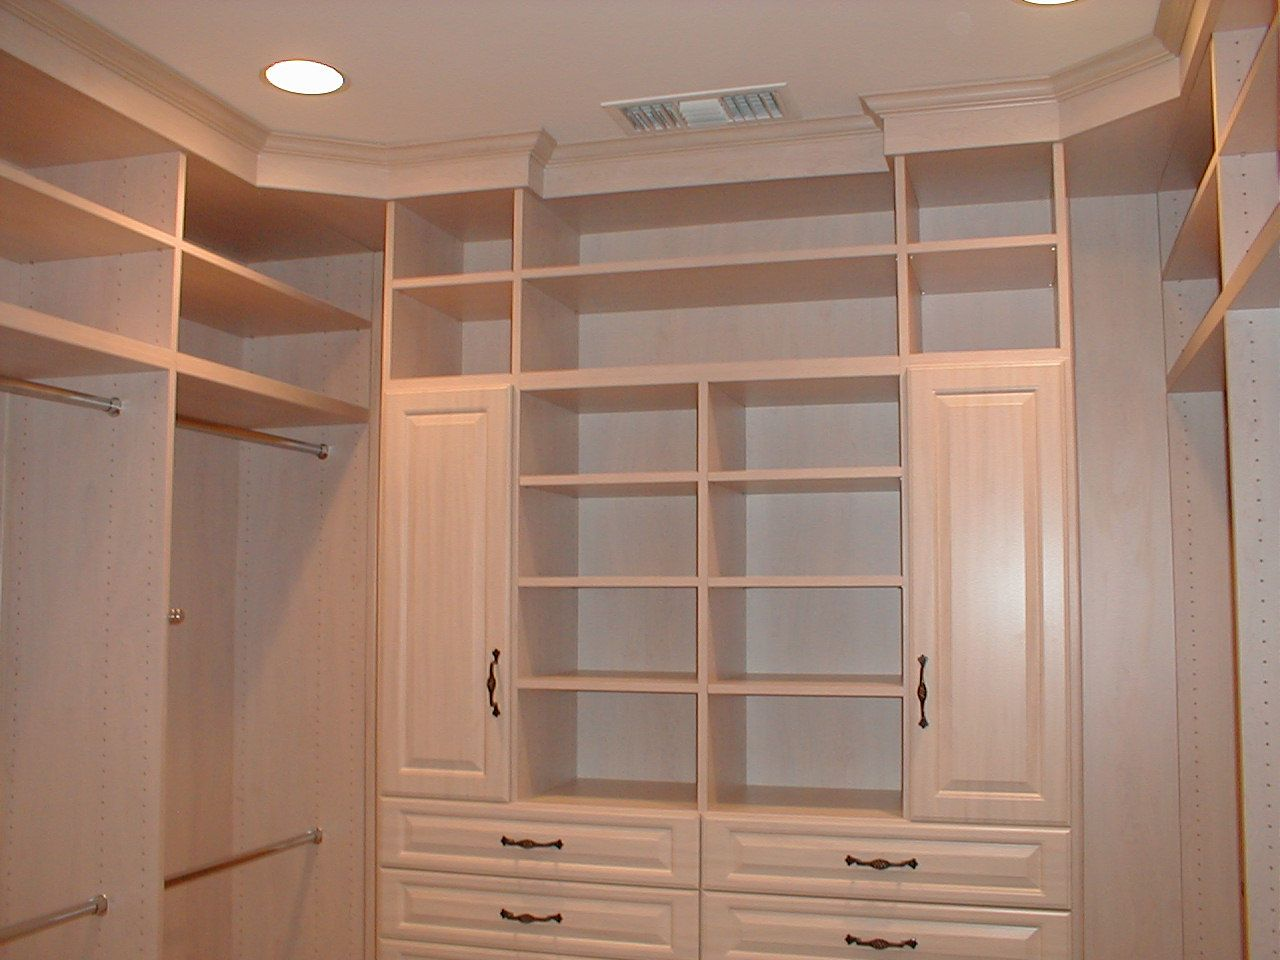 Charming White Wardrobe Storage Organizations Walk In Closet I Like This Finish On